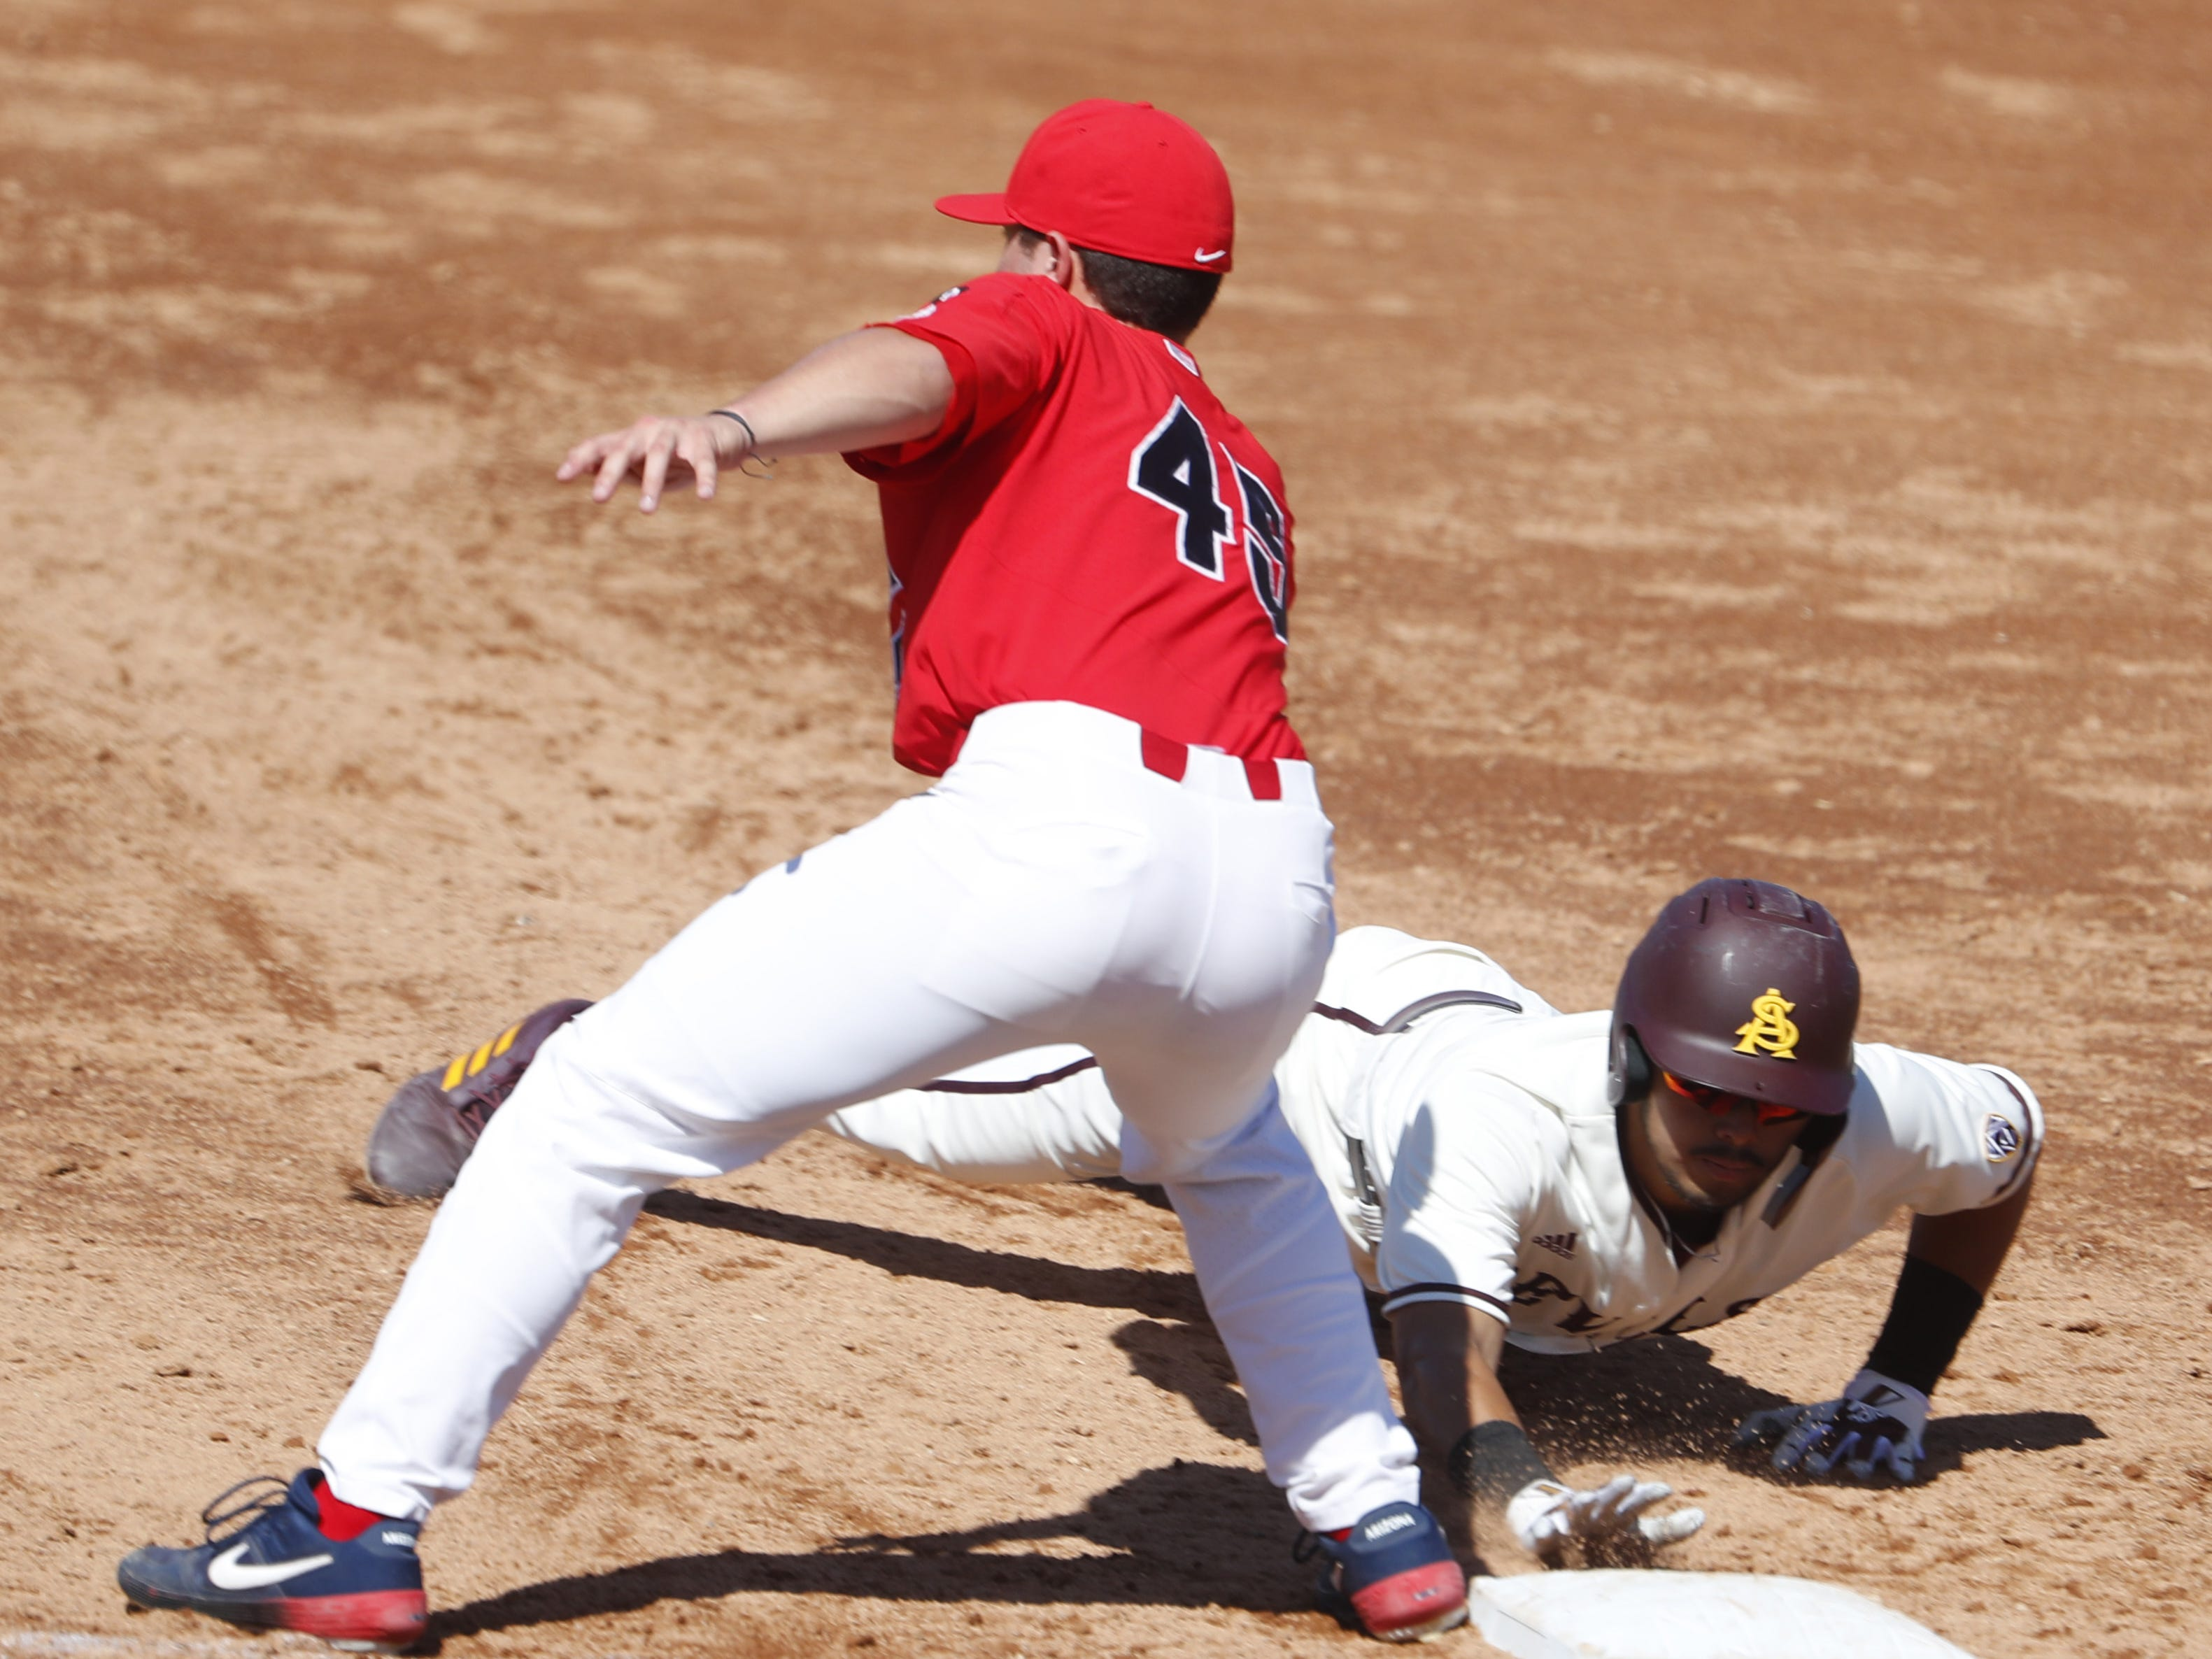 ASU's Lyle Lin (27) slides safely back to first before a tag from Arizona's Branden Boissiere (45) during a game at Phoenix Municipal Stadium in Phoenix, Ariz. on March 30, 2019.